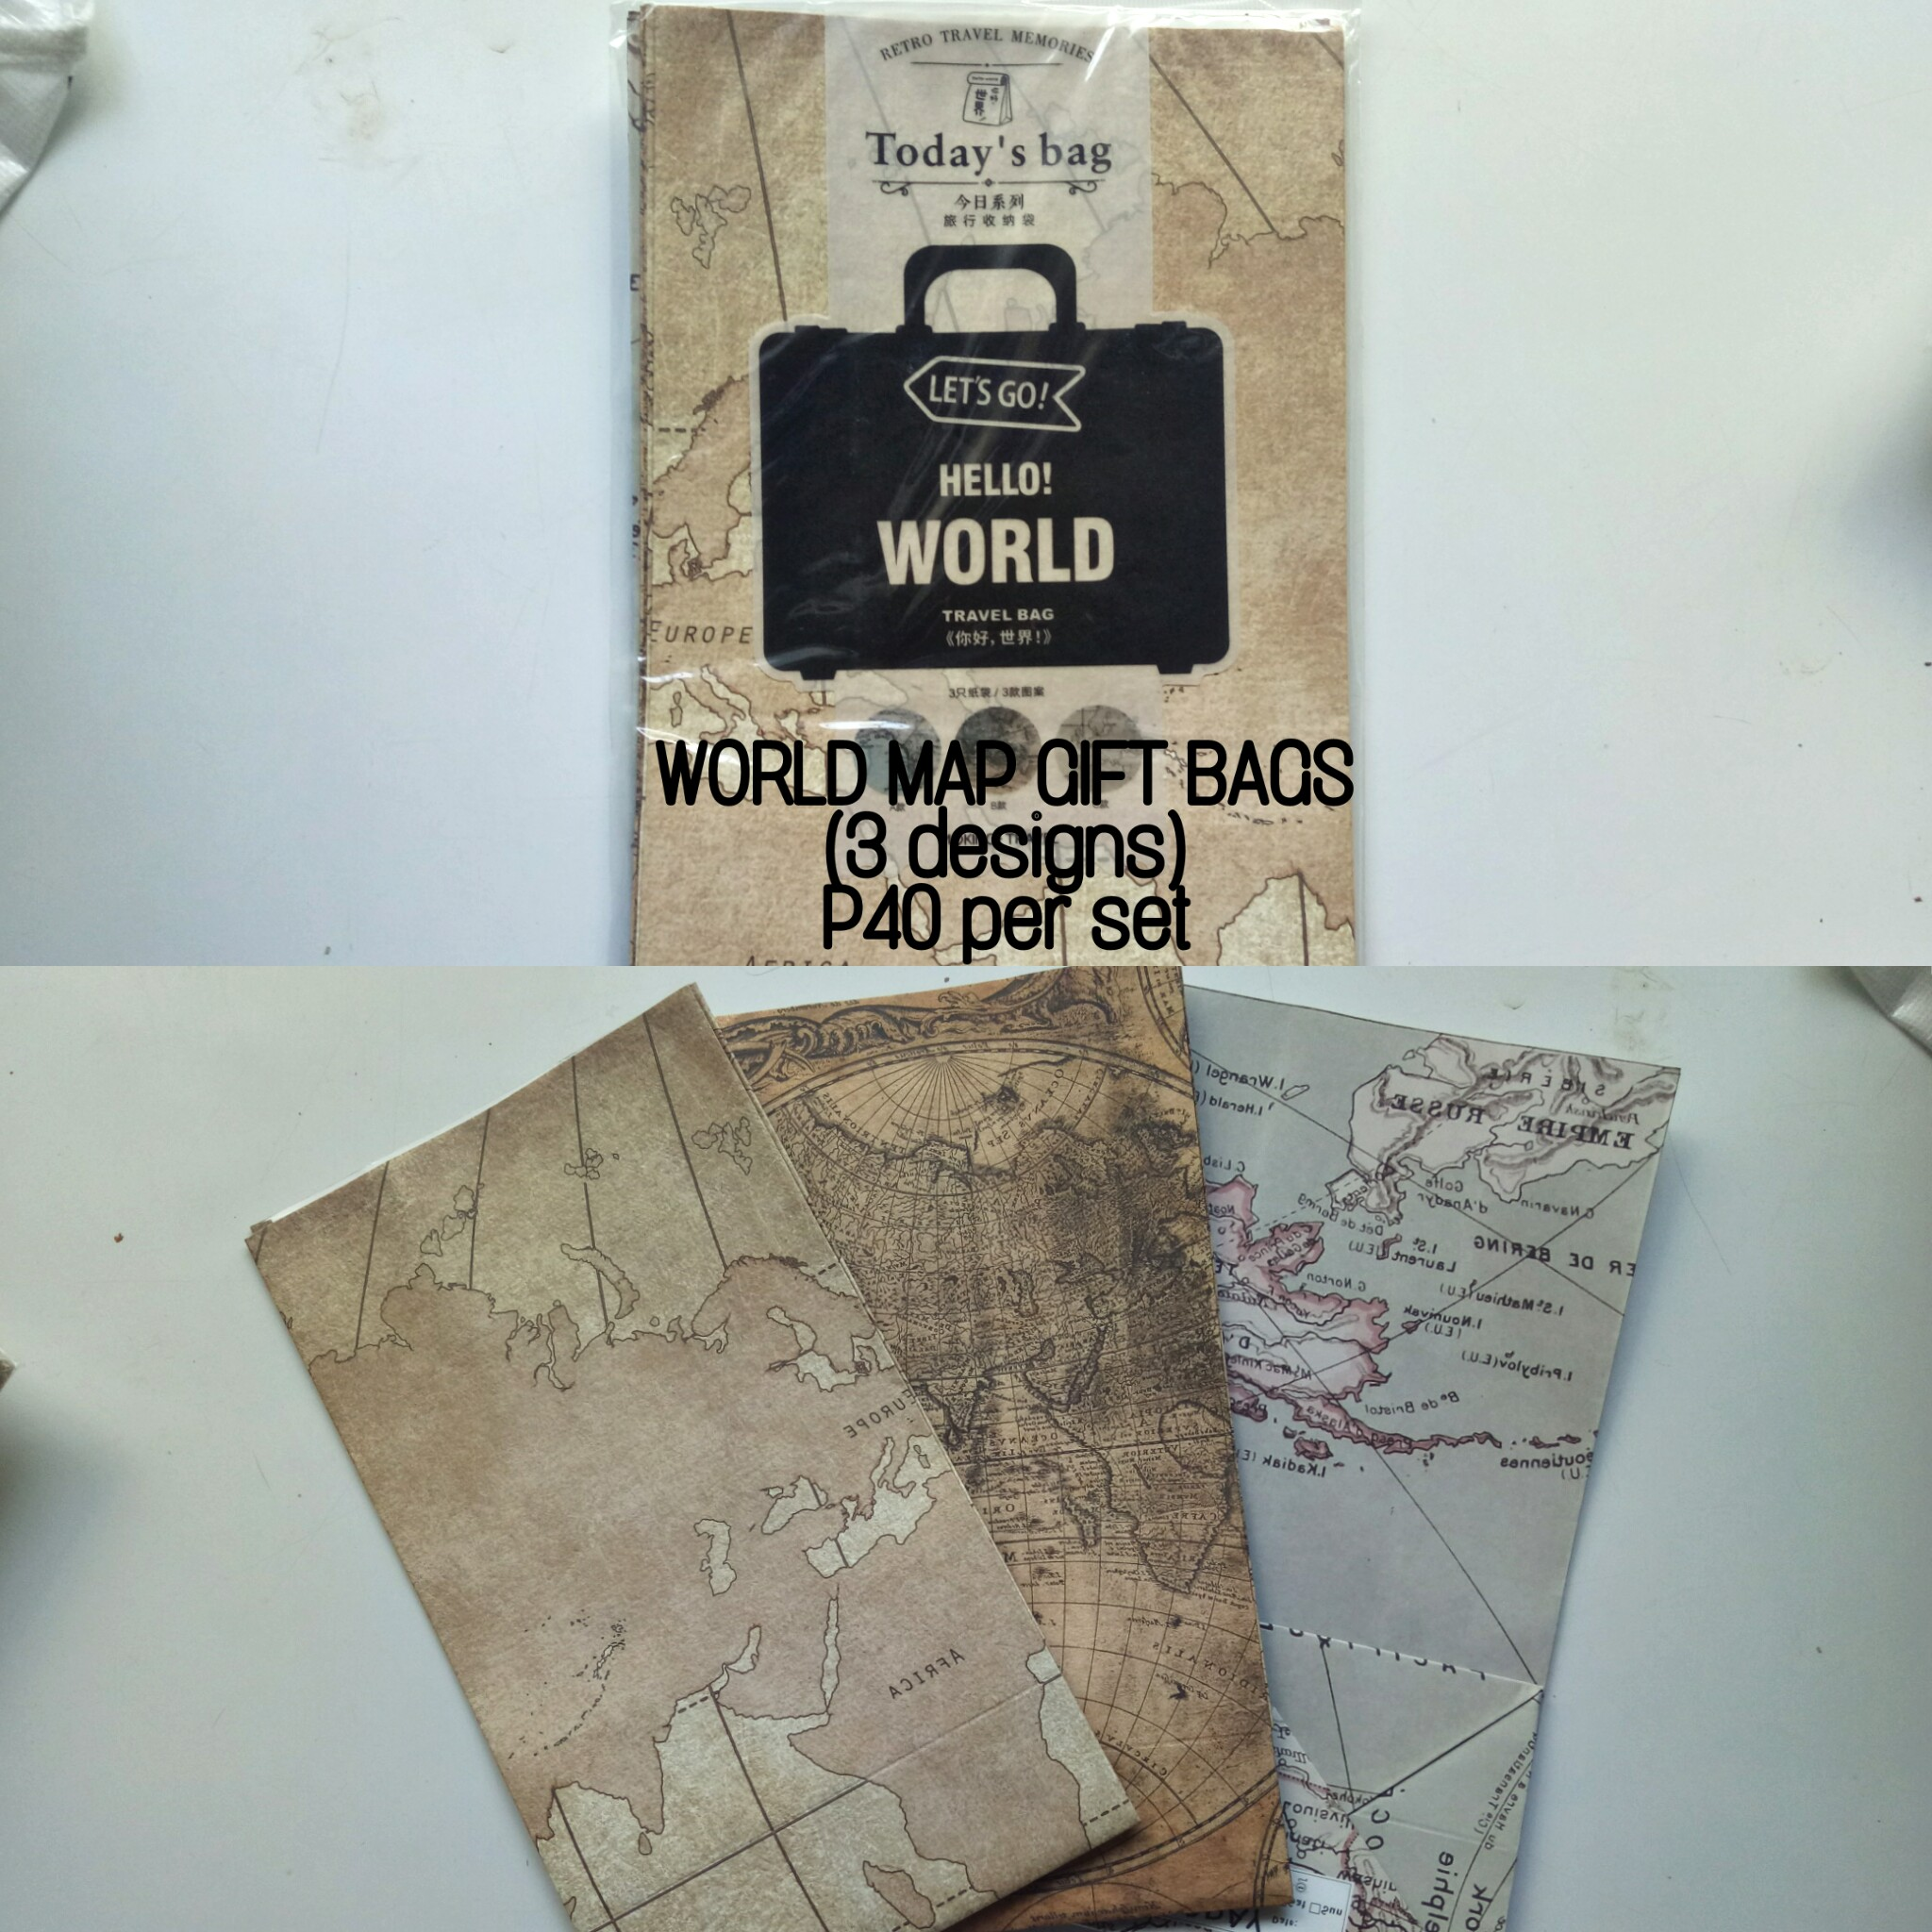 World Map Gift Bags.Onhand World Map Giftbags Set Of 3 Design Craft Others On